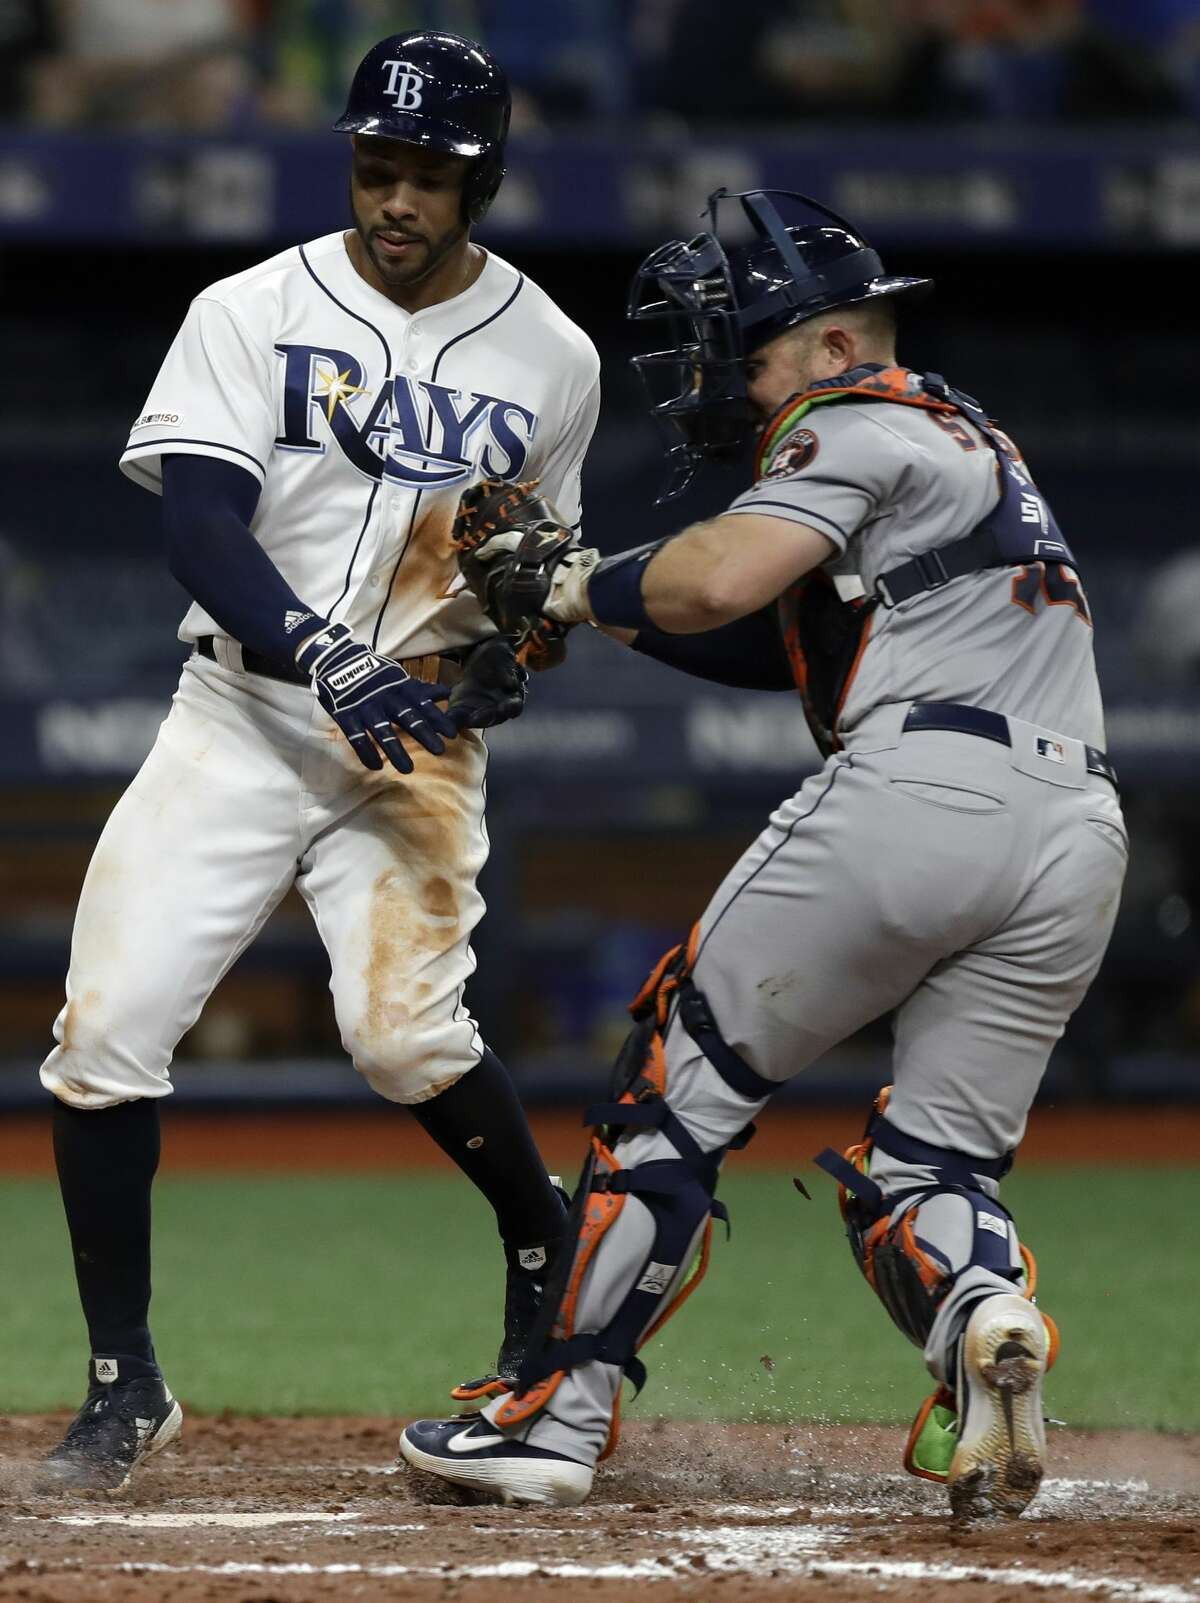 Houston Astros catcher Max Stassi, right, tags out Tampa Bay Rays' Tommy Pham after Pham tried to score on an infield single by Avisail Garcia during the eighth inning of a baseball game Friday, March 29, 2019, in St. Petersburg, Fla. (AP Photo/Chris O'Meara)